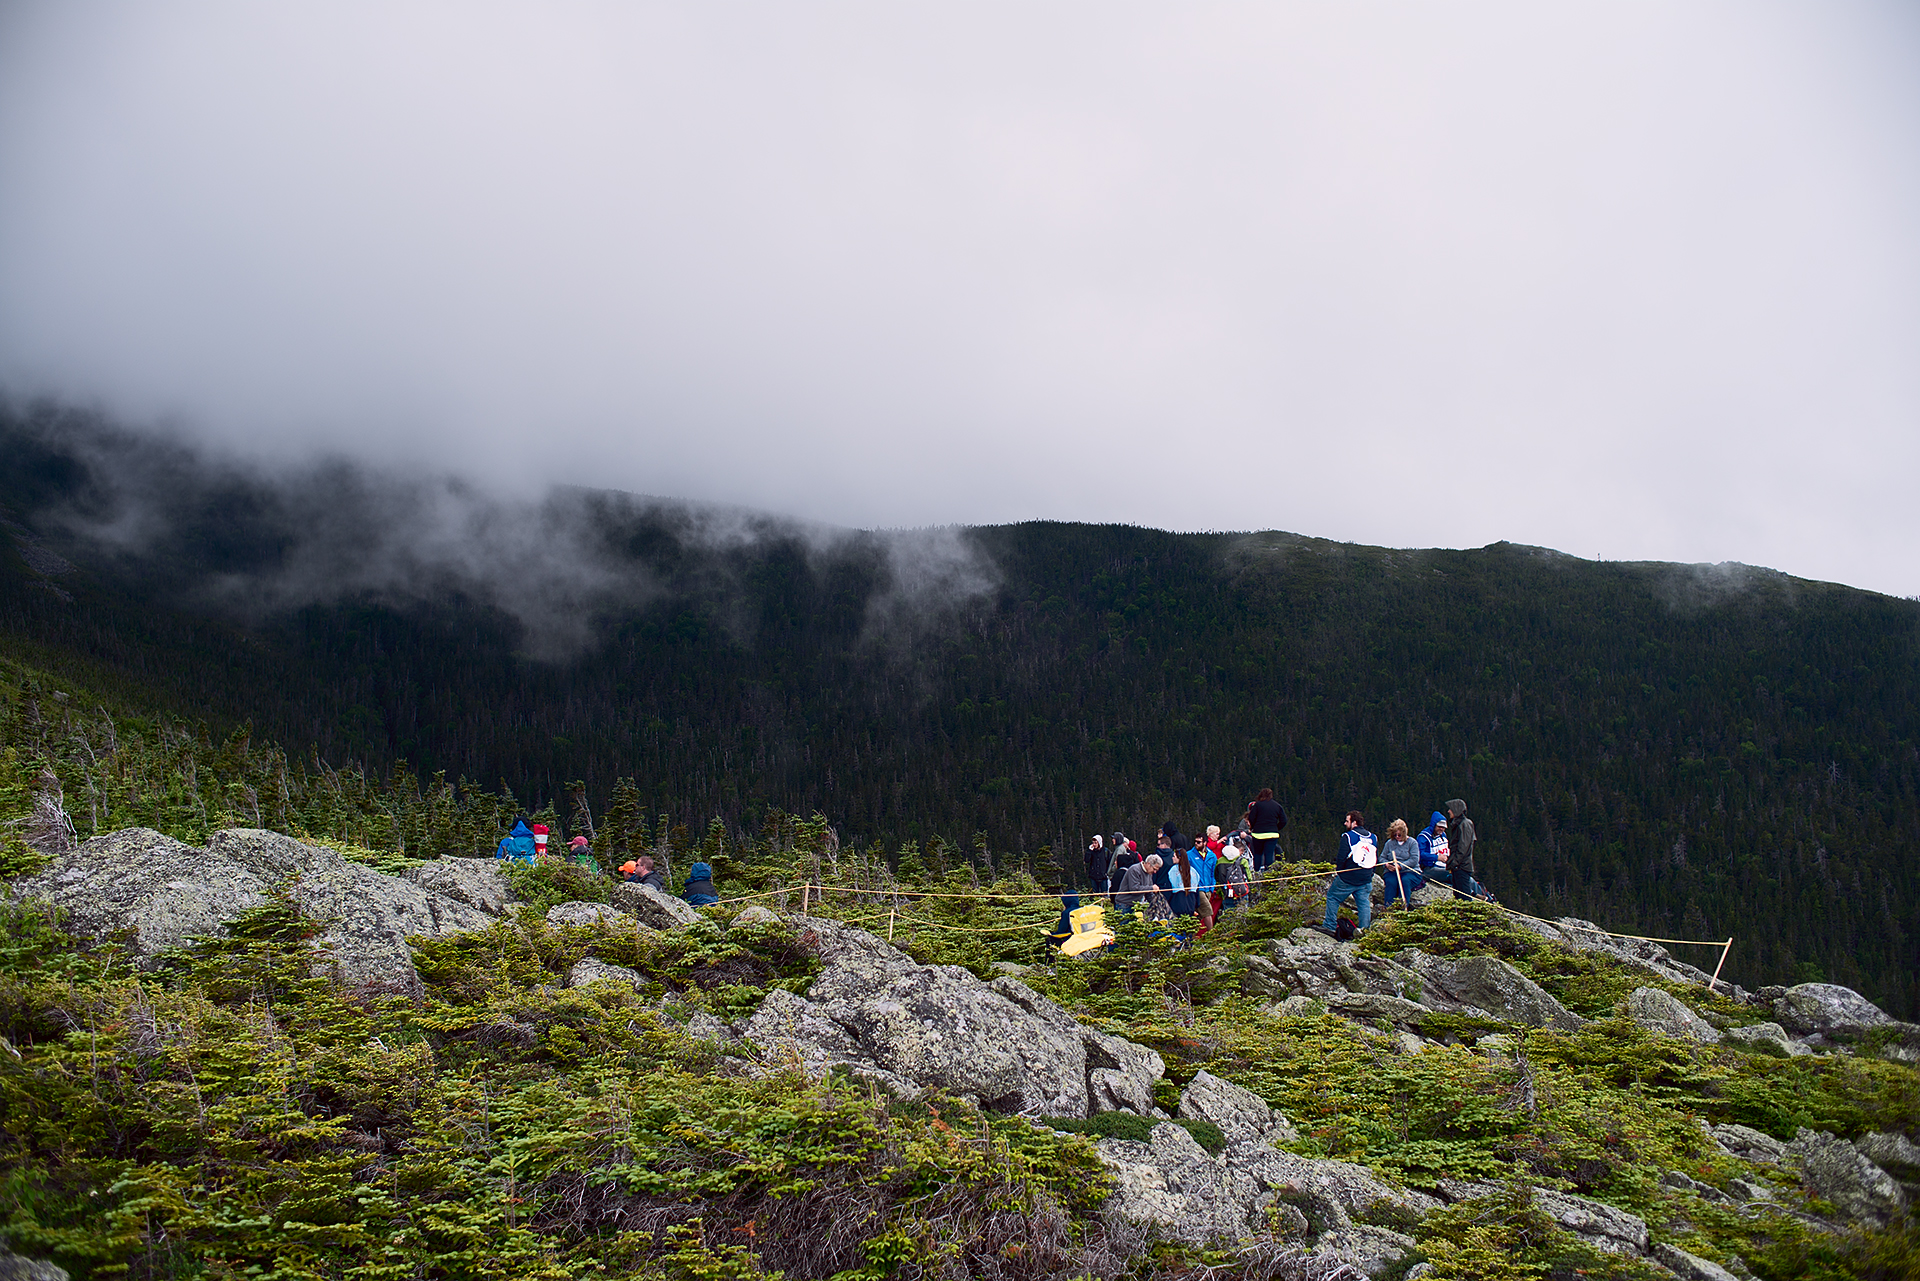 More clouds roll over the peaks at Mount Washington during Climb to the Clouds 2017